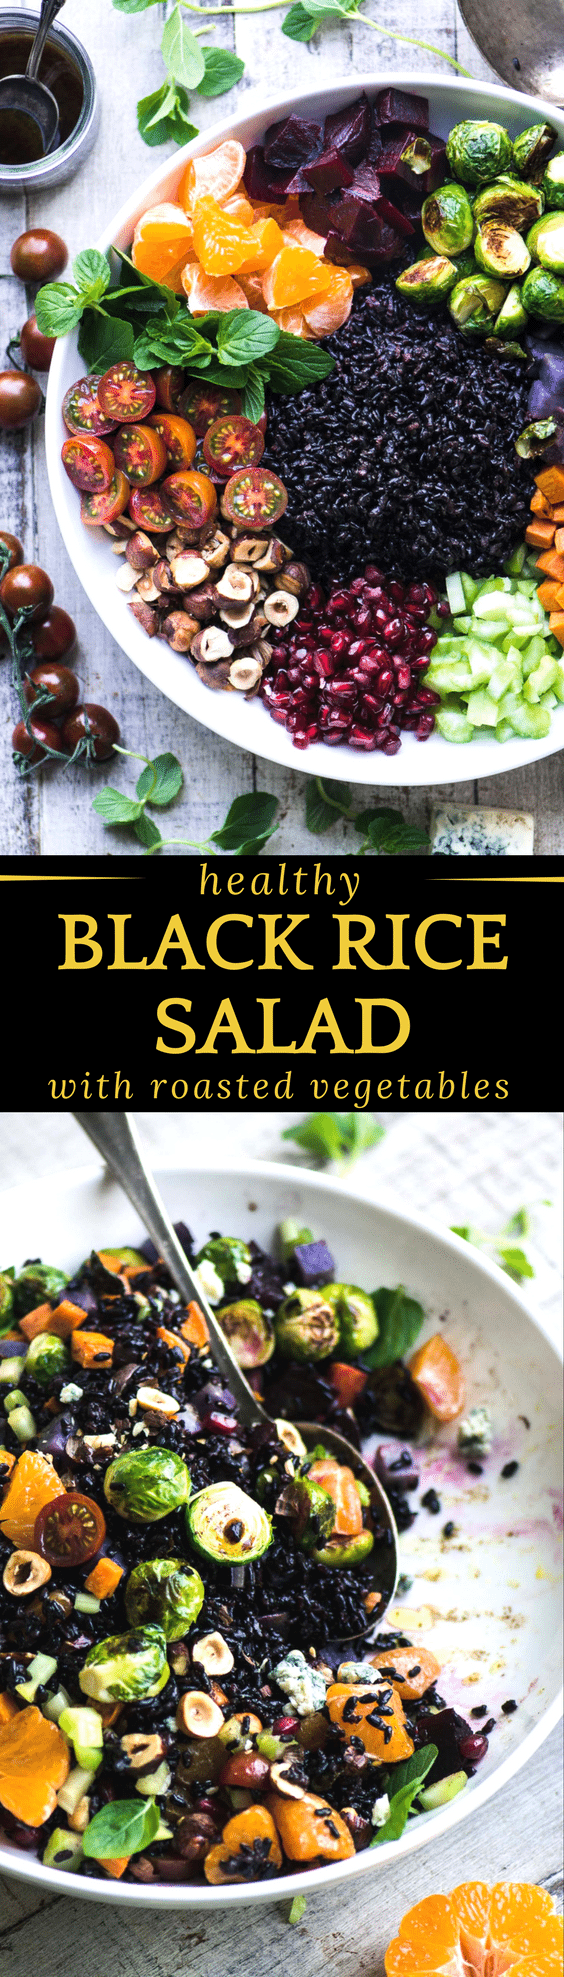 Black Rice Salad with Roasted Vegetables ~ this clean-out-the-fridge salad can be changed up in countless ways depending on what you have around. #salad #rice #blackrice #grainbowl #lunch #healthy #glutenfree #bowl #buddhabowl #blissbowl #glowbowl #healthylunch